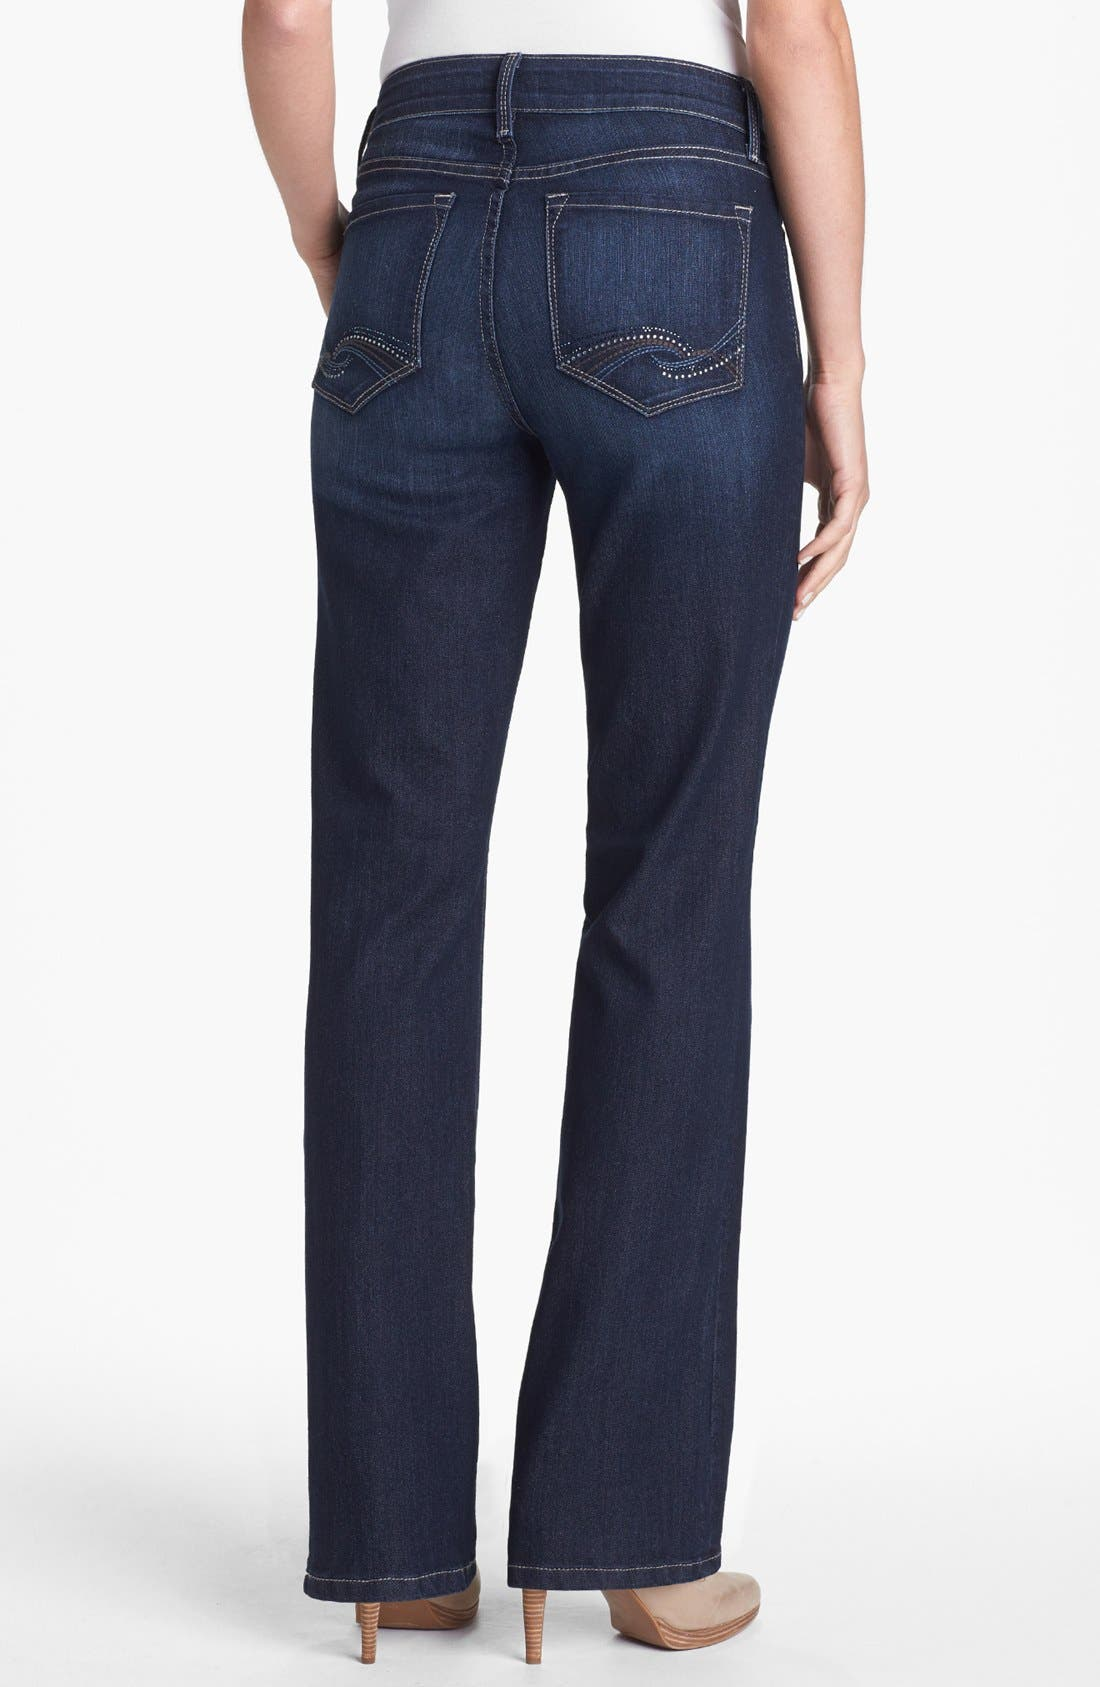 Alternate Image 3  - NYDJ 'Barbara' Embellished Pocket Stretch Bootcut Jeans (Hollywood) (Regular & Petite)